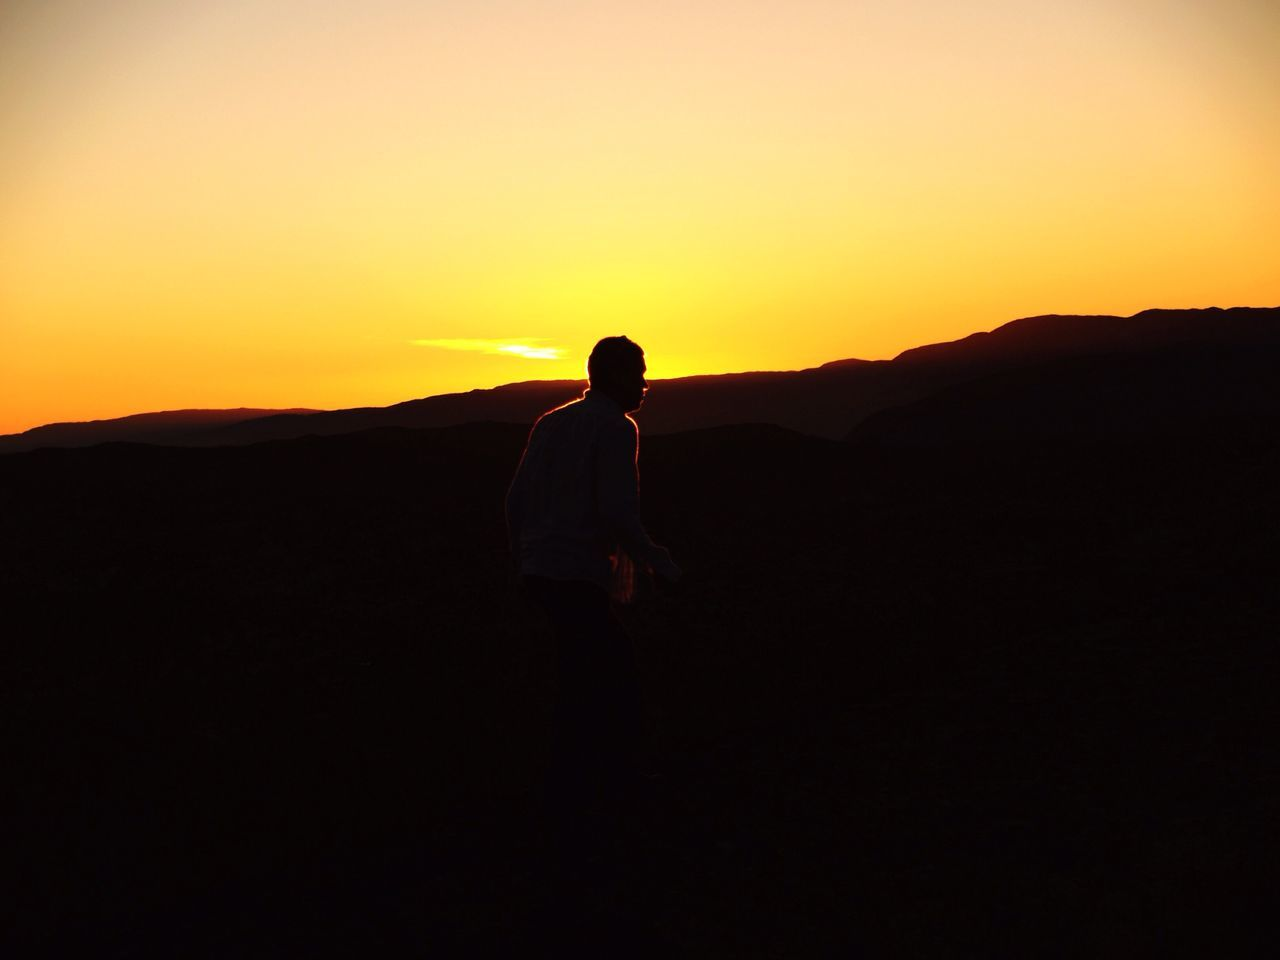 Beautiful stock photos of silhouette, Dusk, Head And Shoulders, Mountain, One Man Only